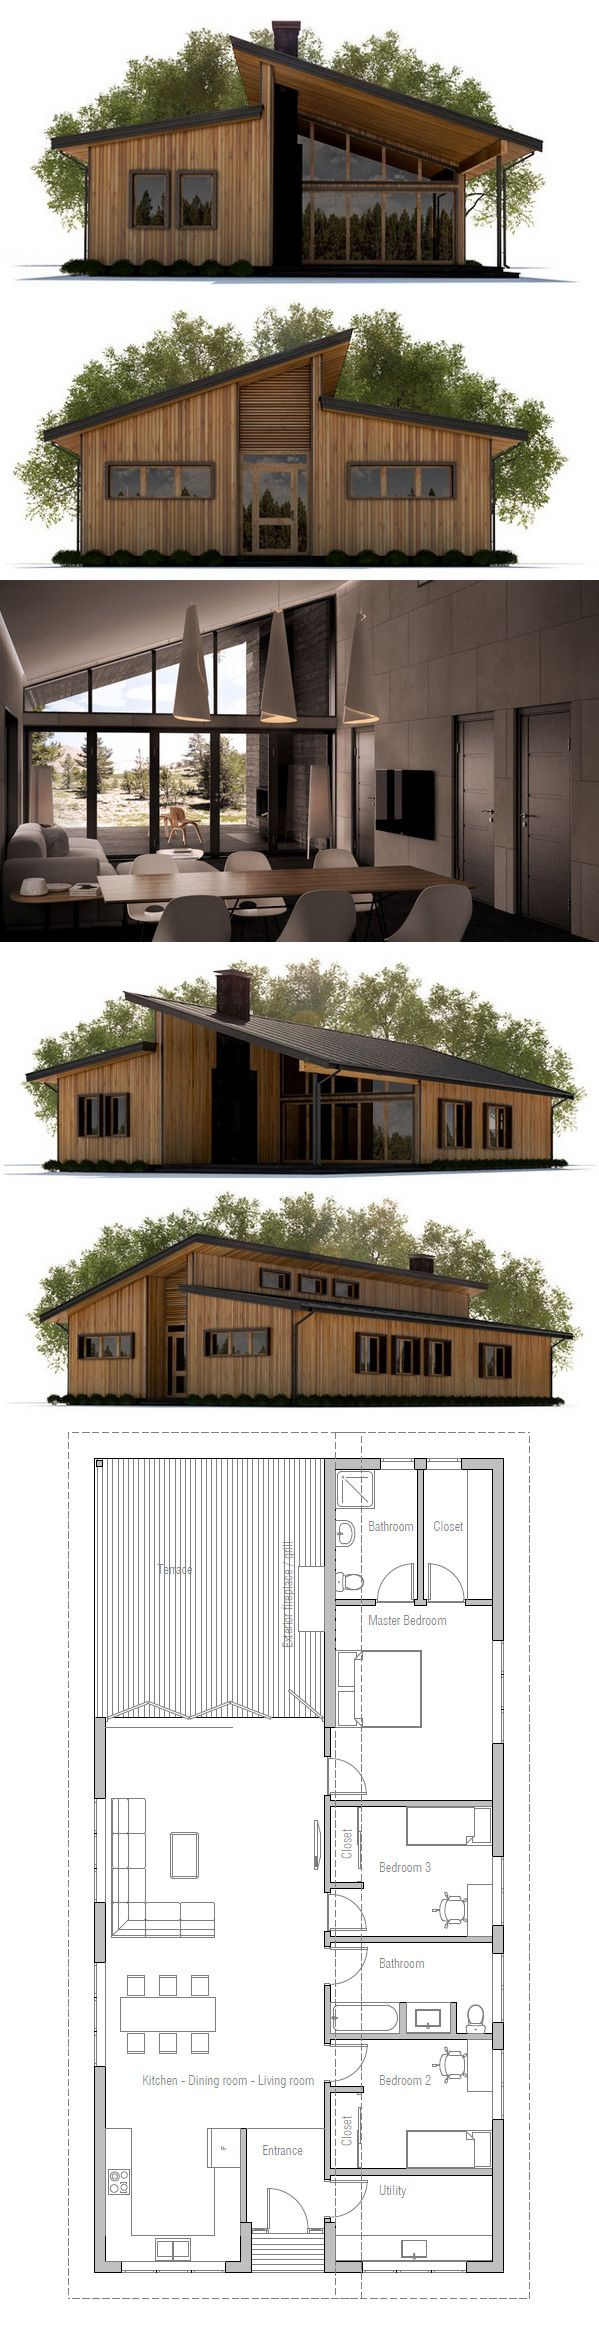 Container House Container House kleines